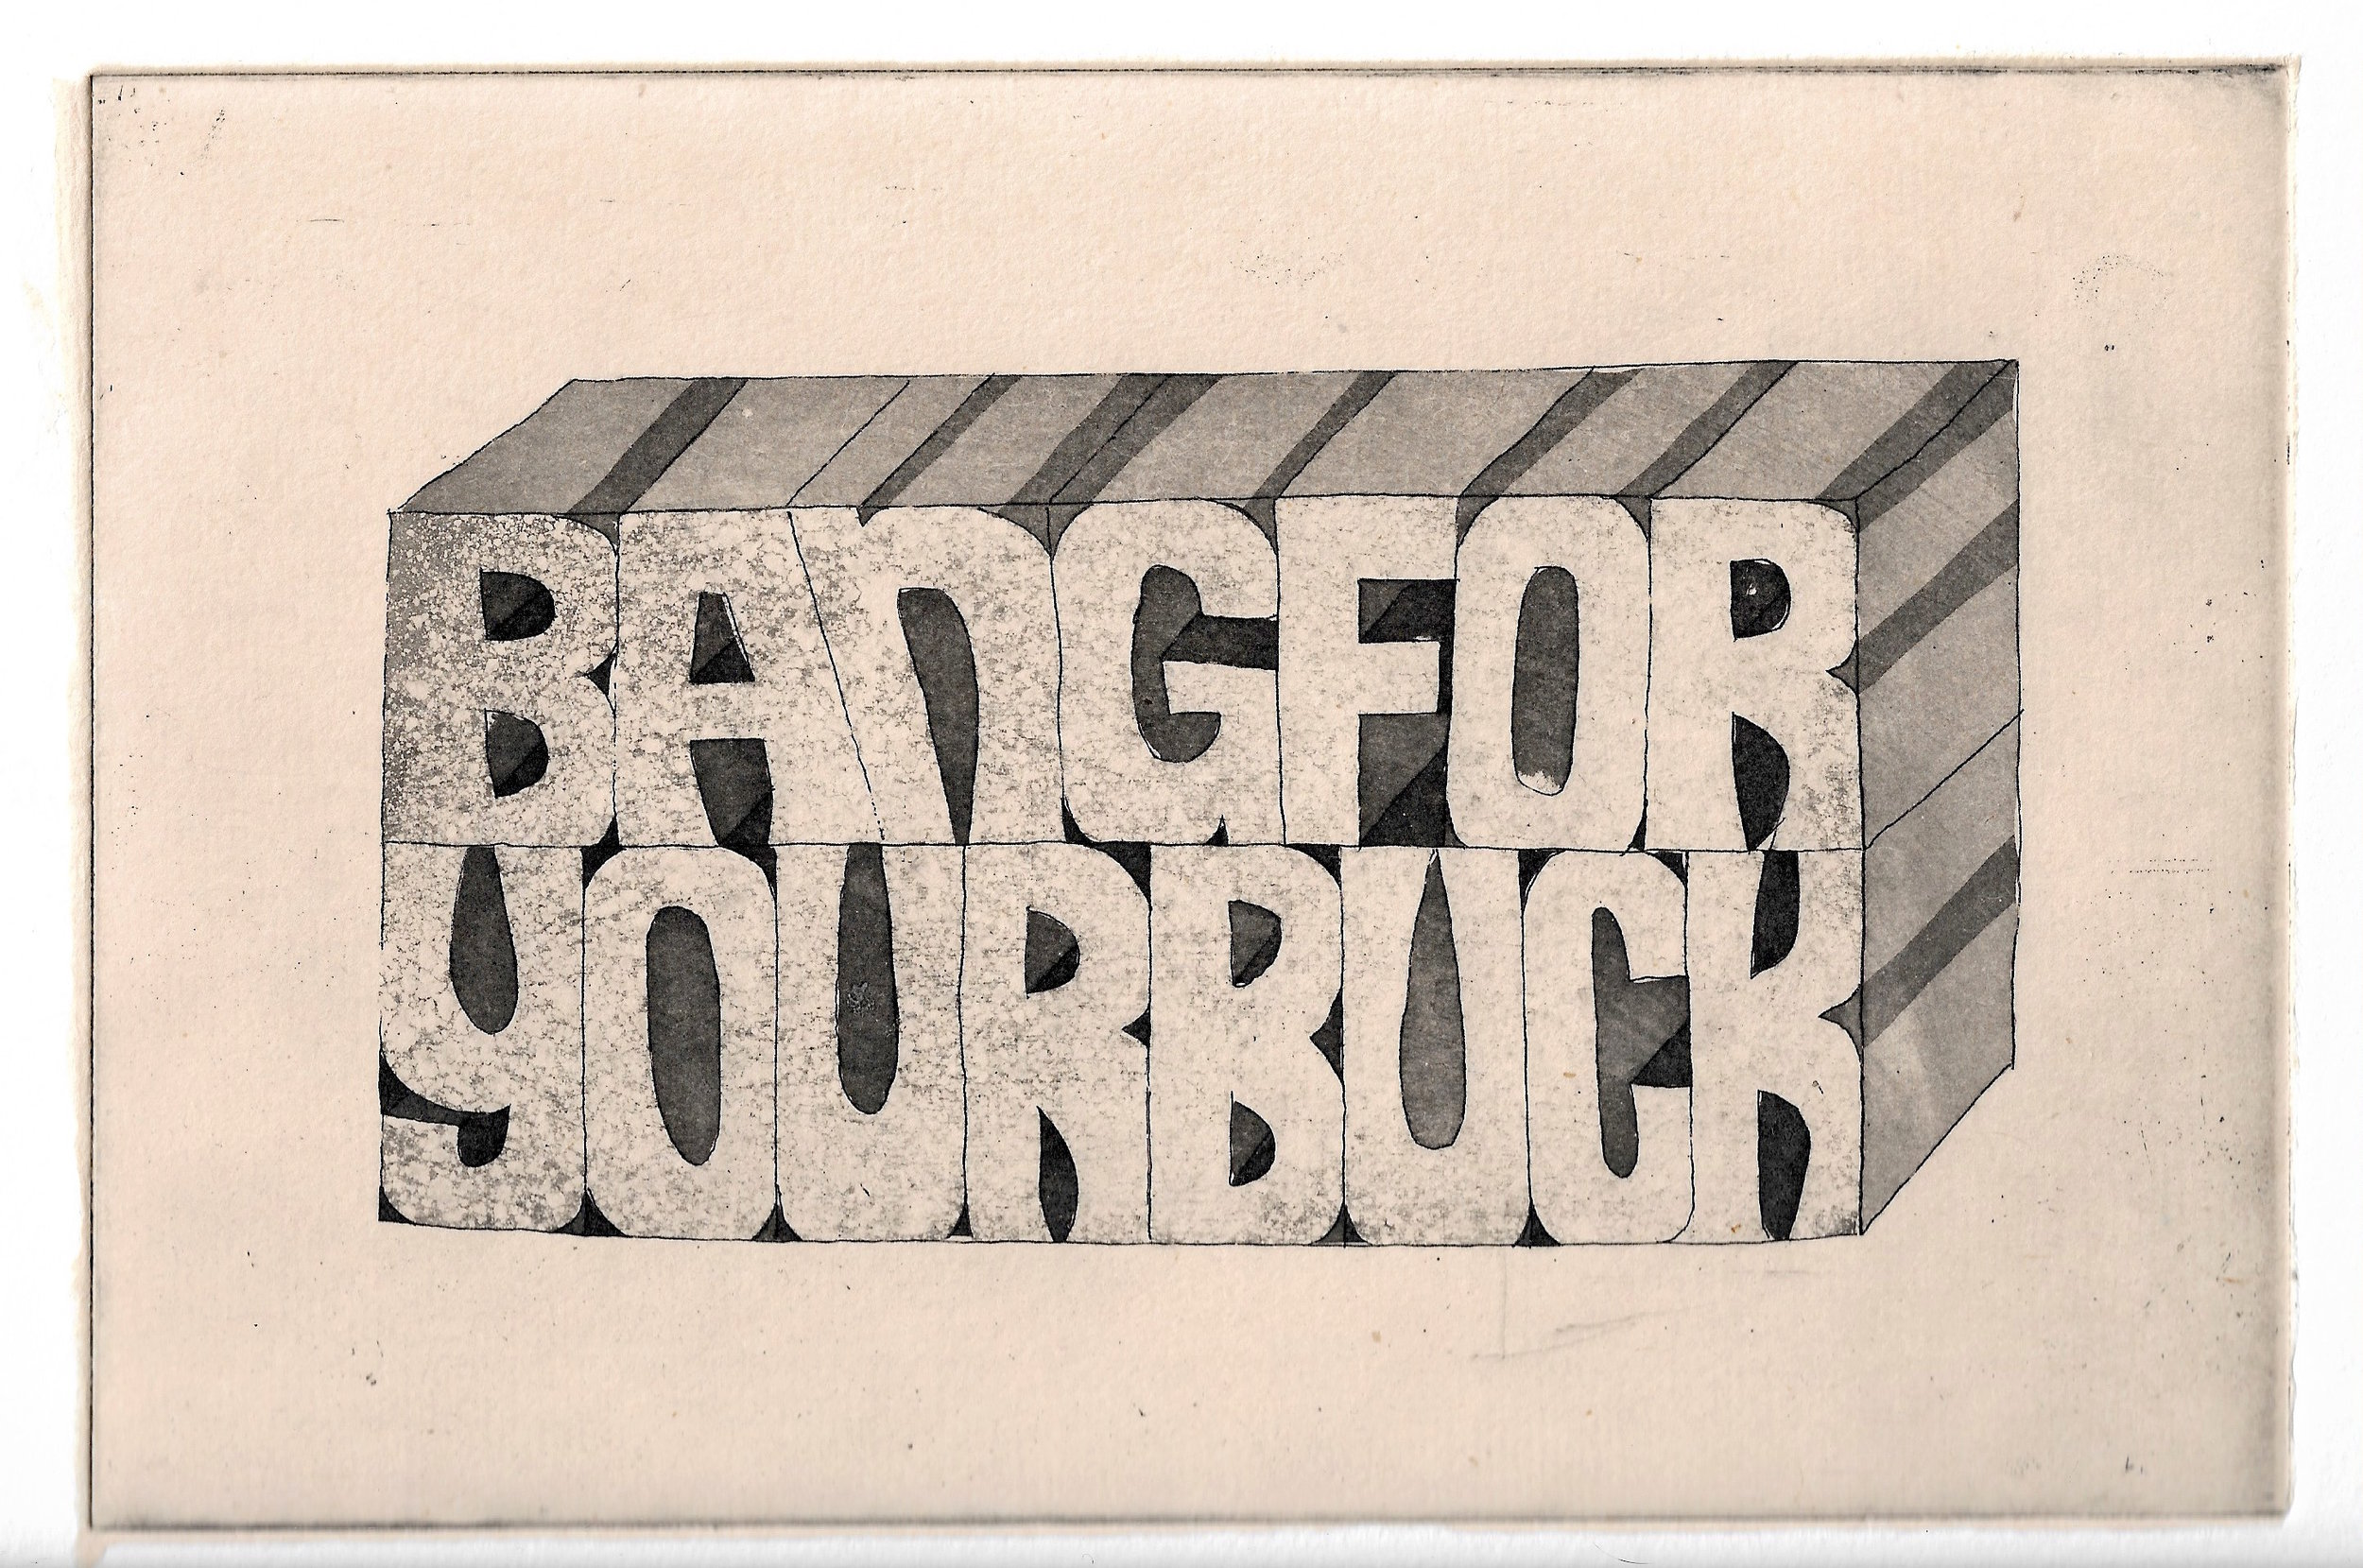 Ben Beres,  Bang , Sugarlift, aquatint and chine collé, 6 x 9 inches